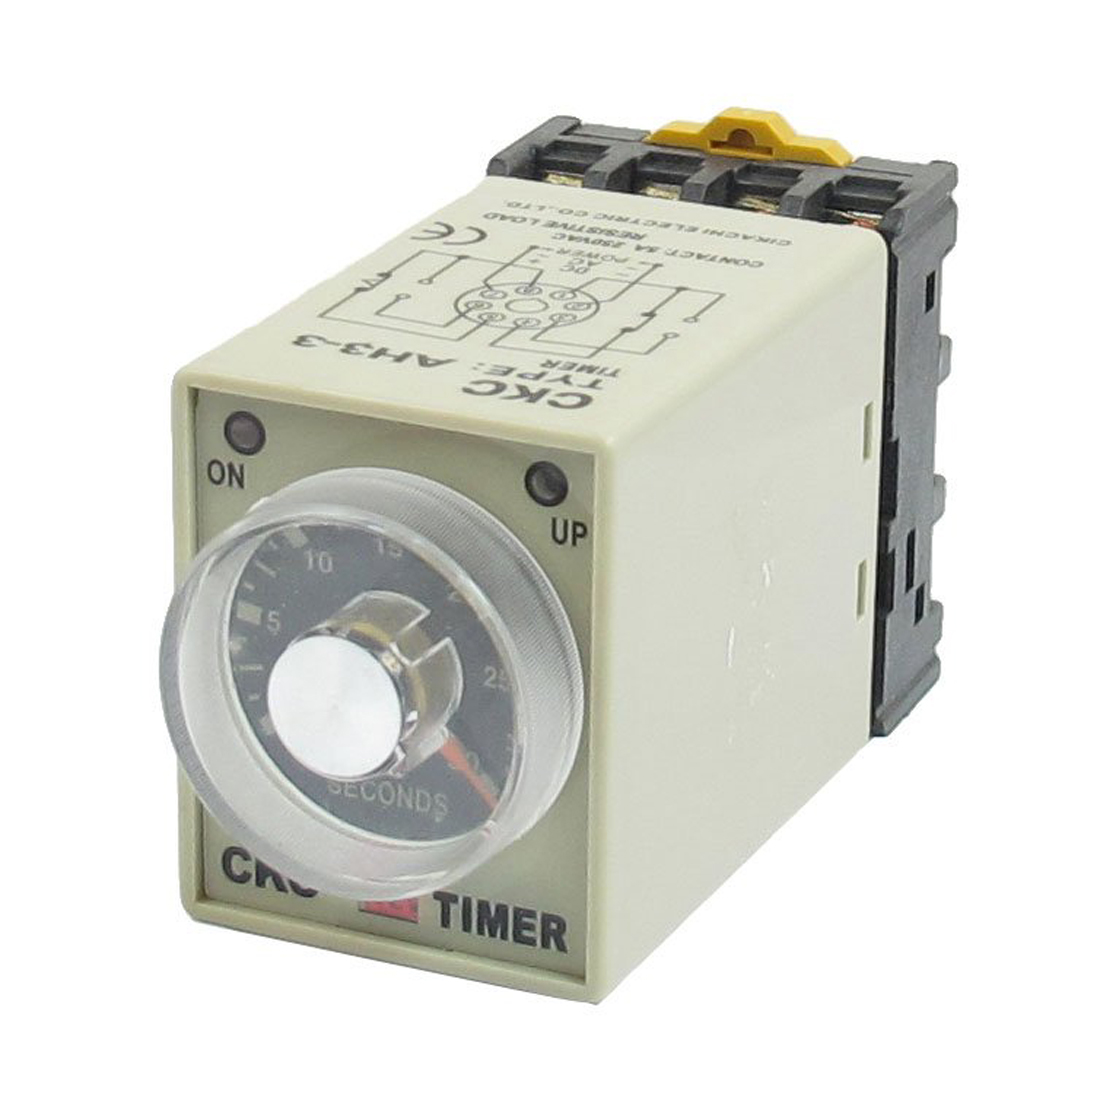 Promotion! DC 12V 0-30 Seconds 30s Electric Delay Timer Timing Relay DPDT 8P w Base szs hot dc 12v 0 30 seconds 30s electric delay timer timing relay dpdt 8p w base